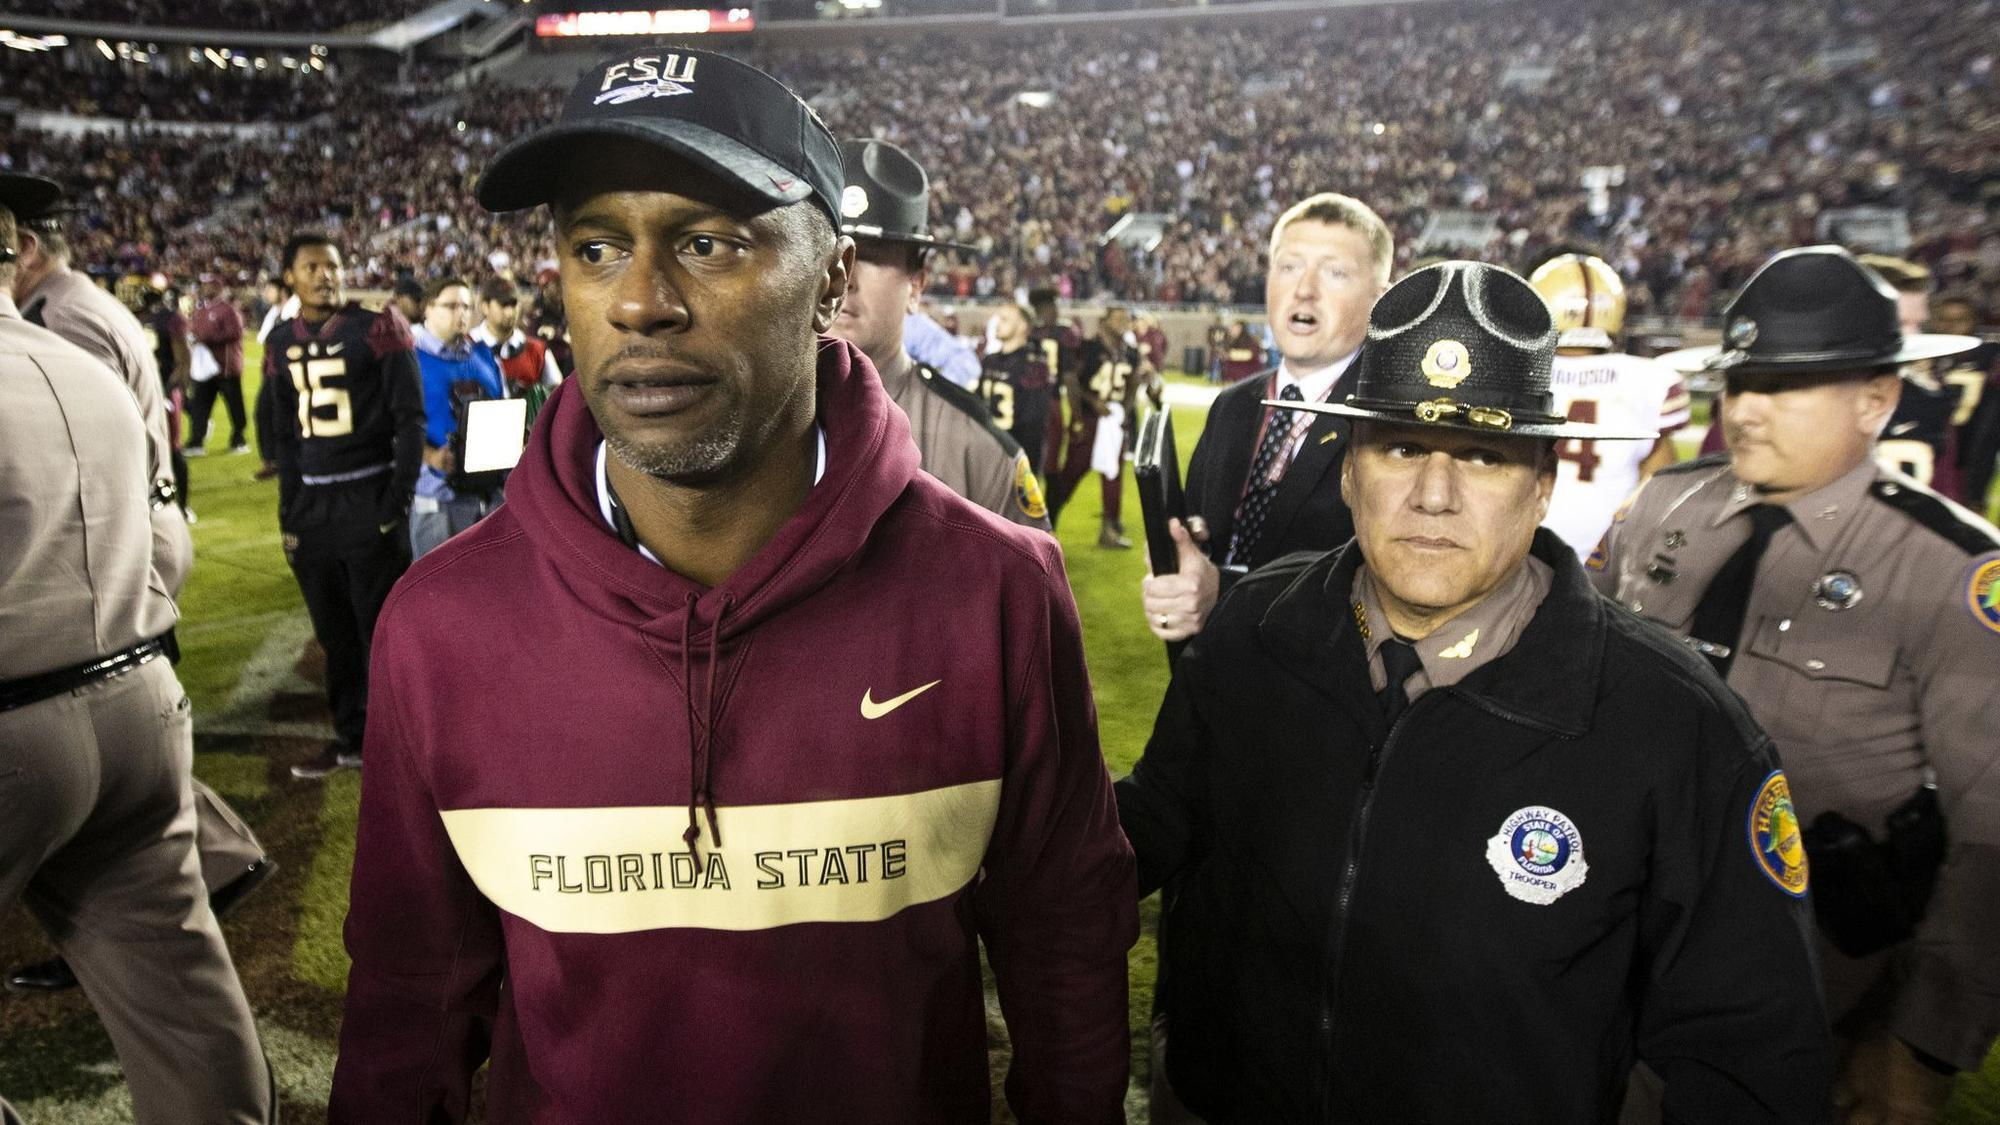 Fsu Fan Post Stating Willie Taggart Should Be Lynched Prompts